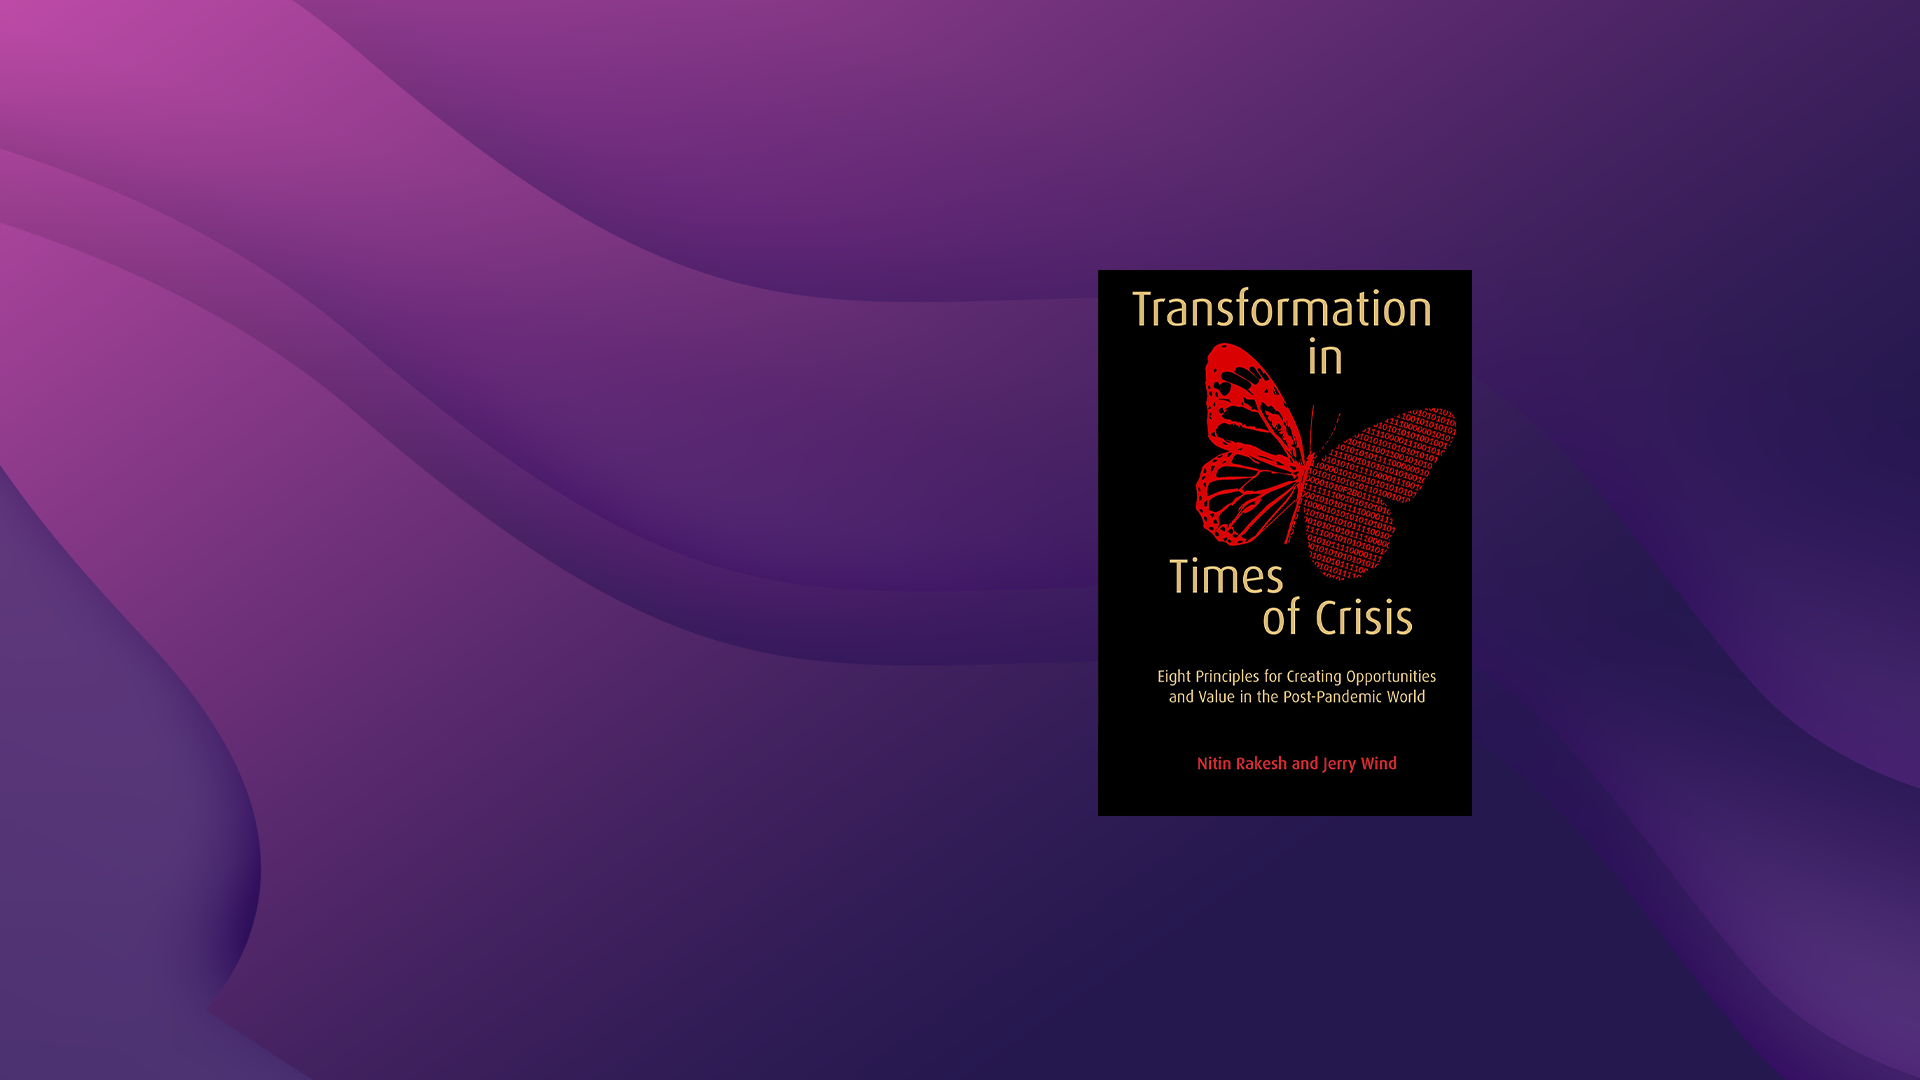 1493: Transformation in Times of Crisis